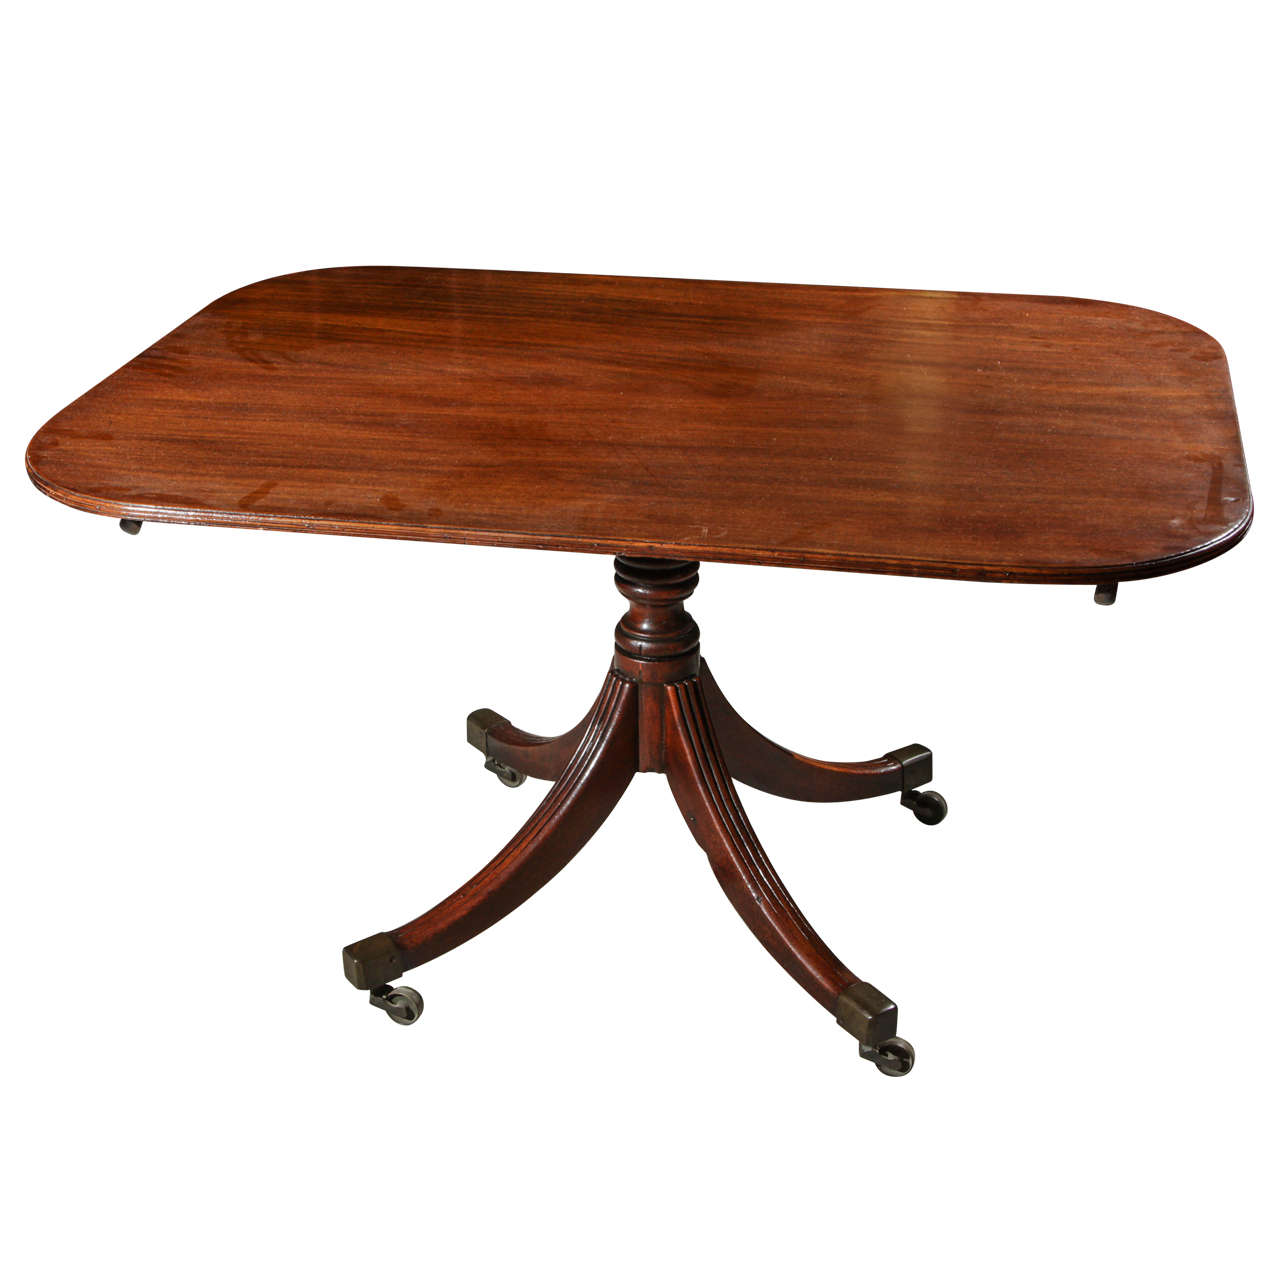 19th Century Mahogany Breakfast Table